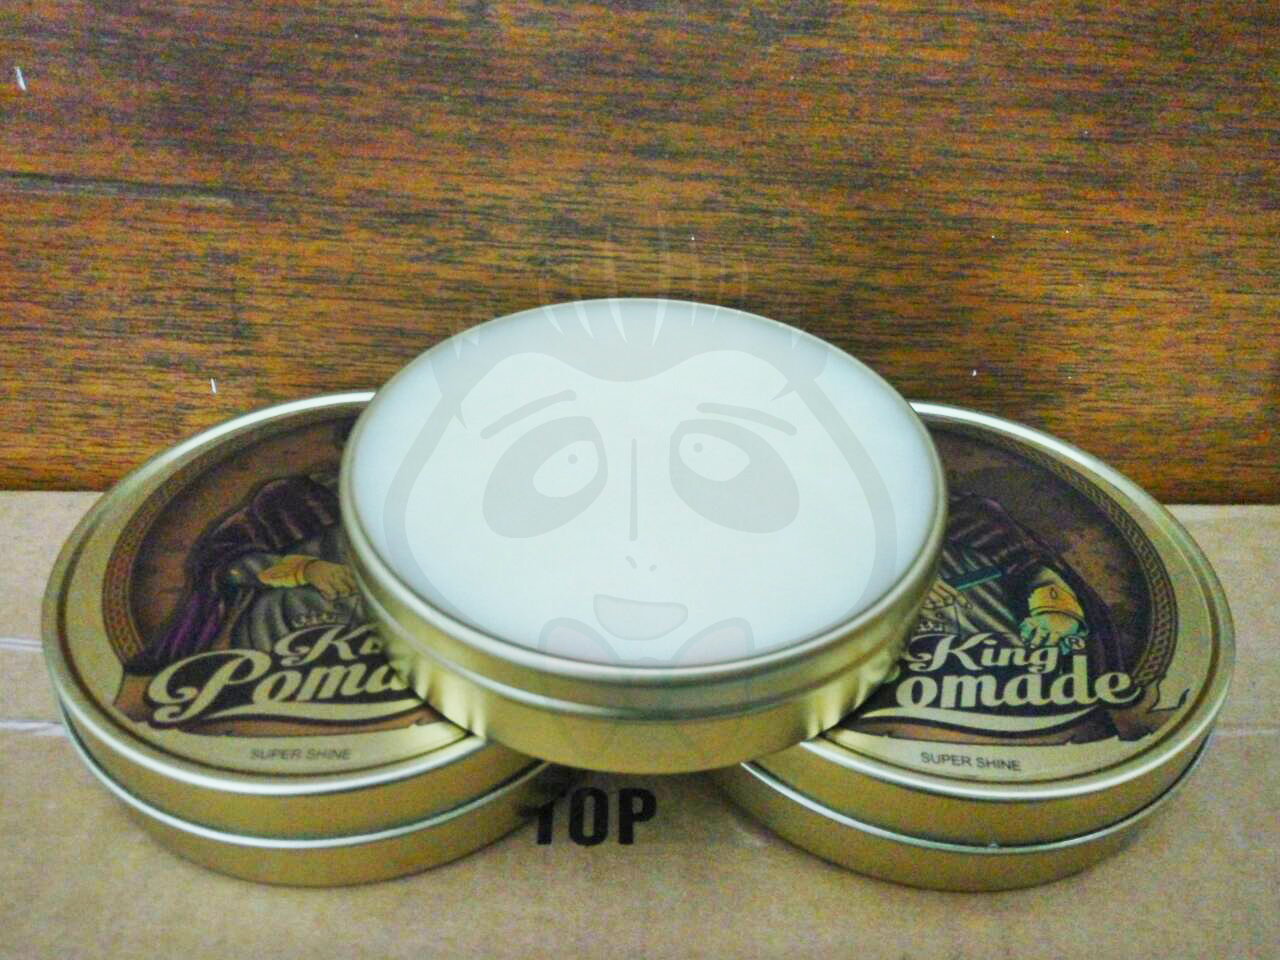 Jual King Pomade Super Shine Hold 28 Oz Murah Surabaya Anonymous Panda Tokopedia